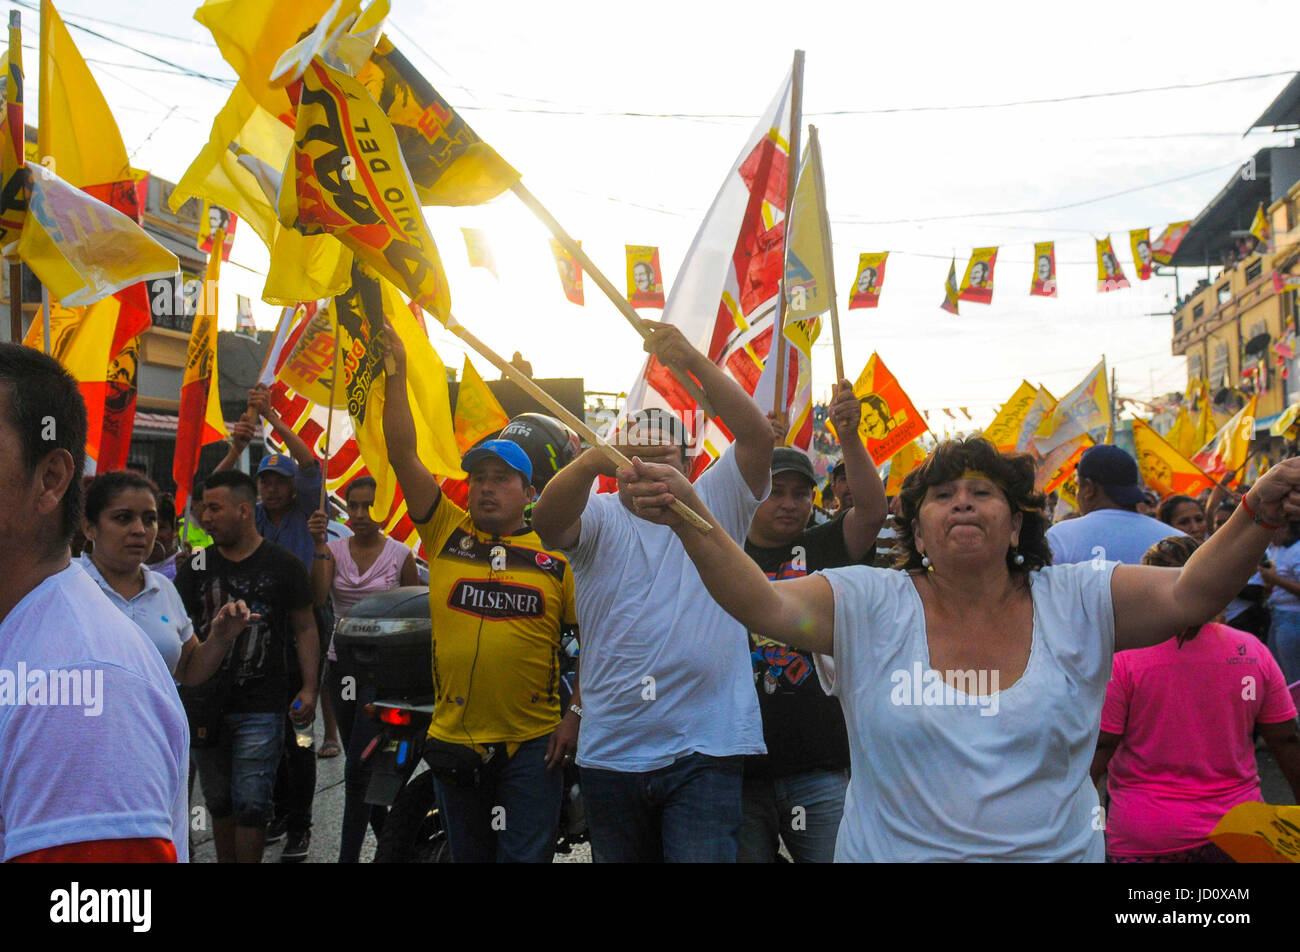 Supporters Of Former Ecuadorian President Abdala Bucaram Attend A Rally In Guayaquil Ecuador 17 June 2017 Arrived At Small Neighborhood The